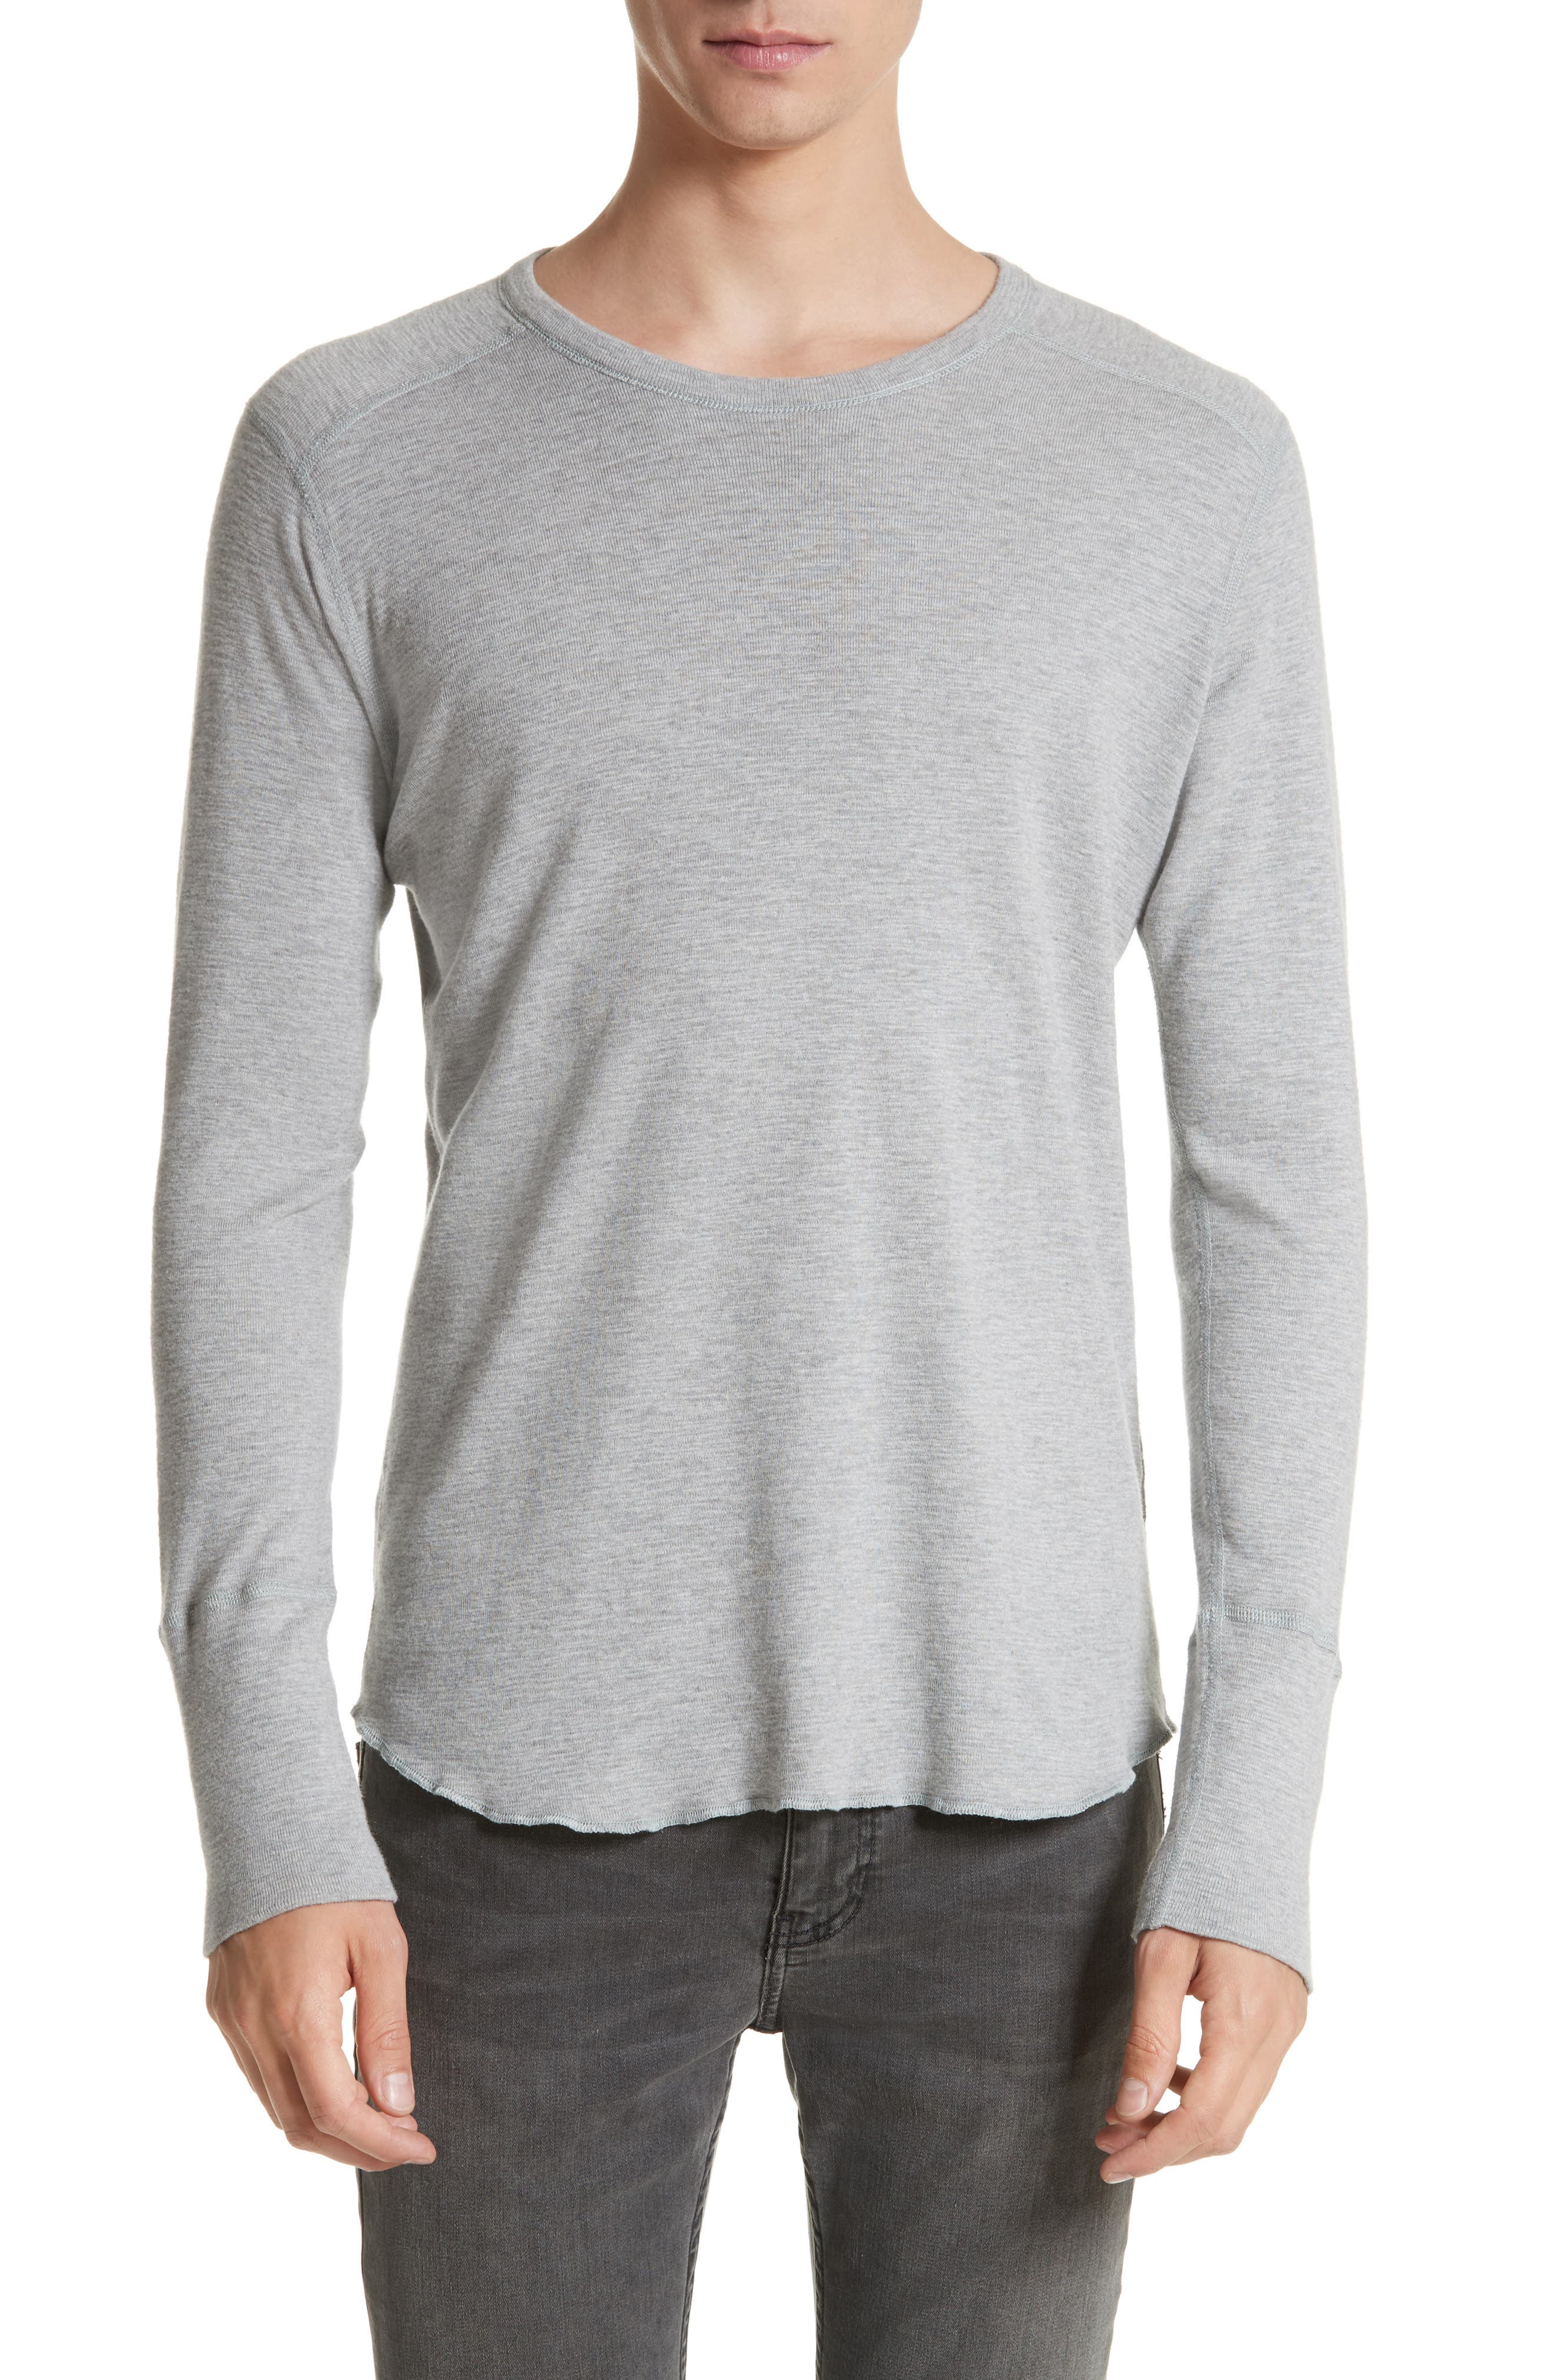 wings + horns Slub Crewneck Sweater